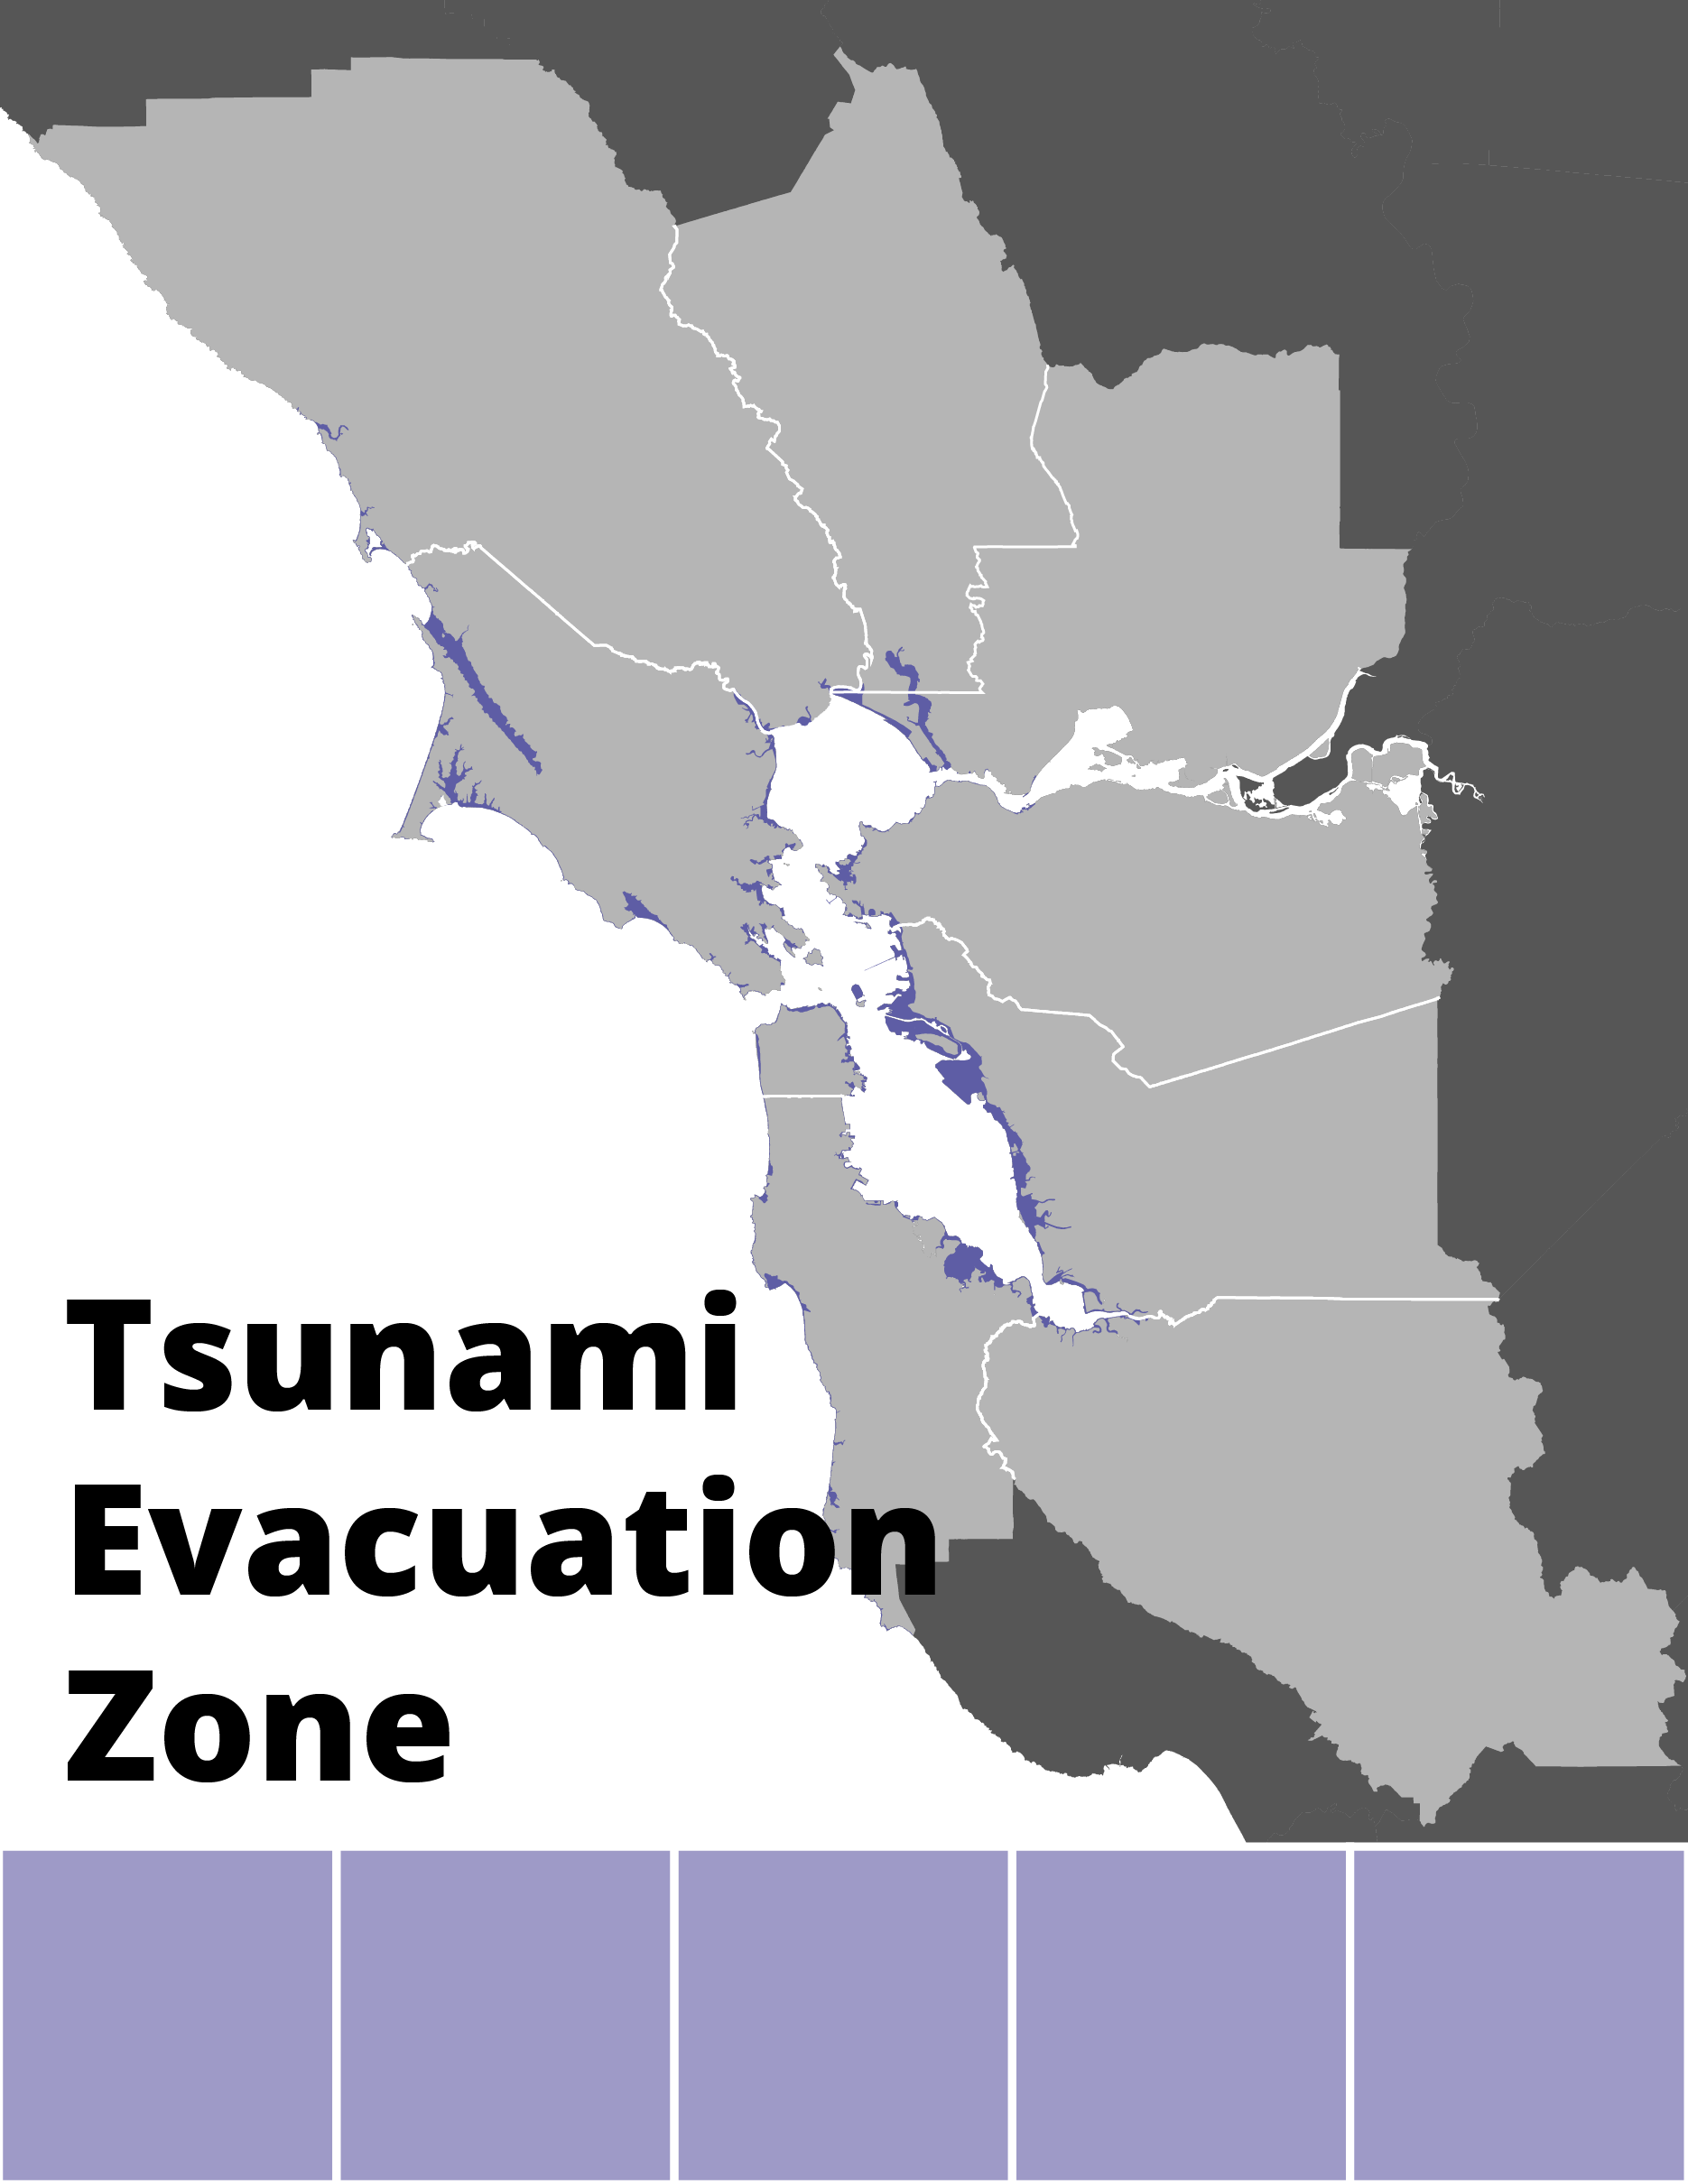 Tsunami Inundation Map for Coastal Evacuation